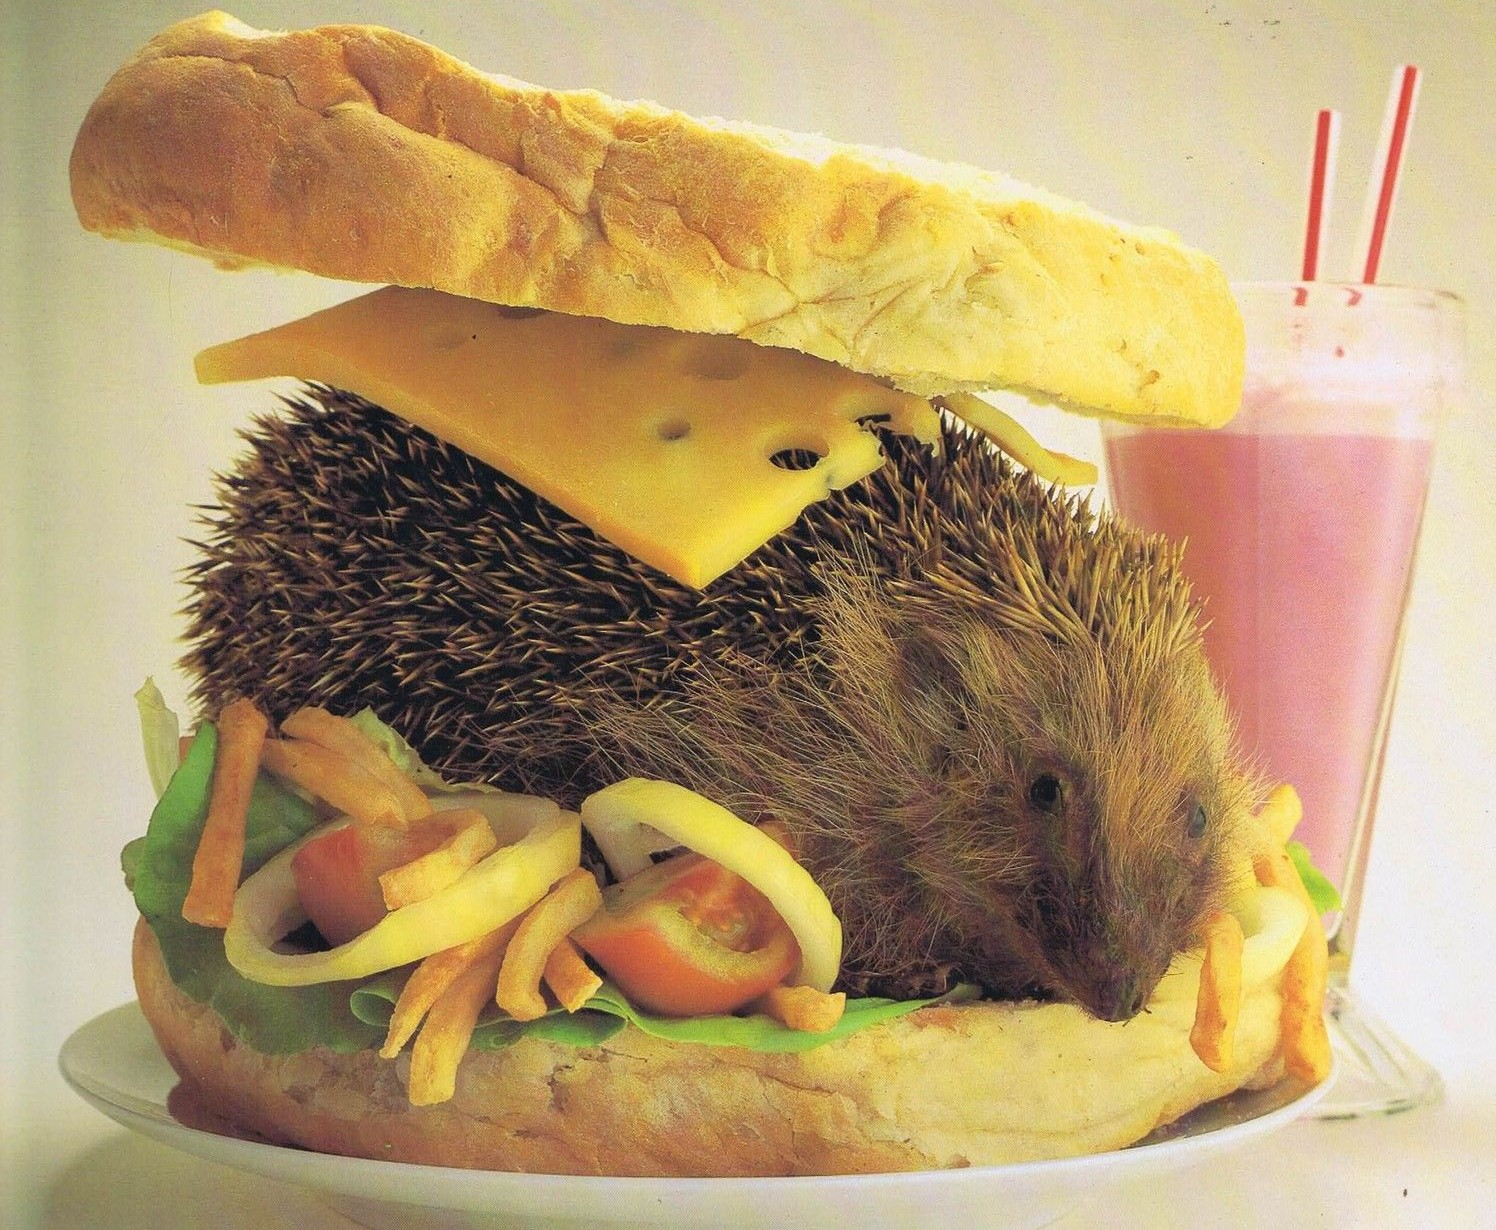 Hedgehog-Sandwich.jpg